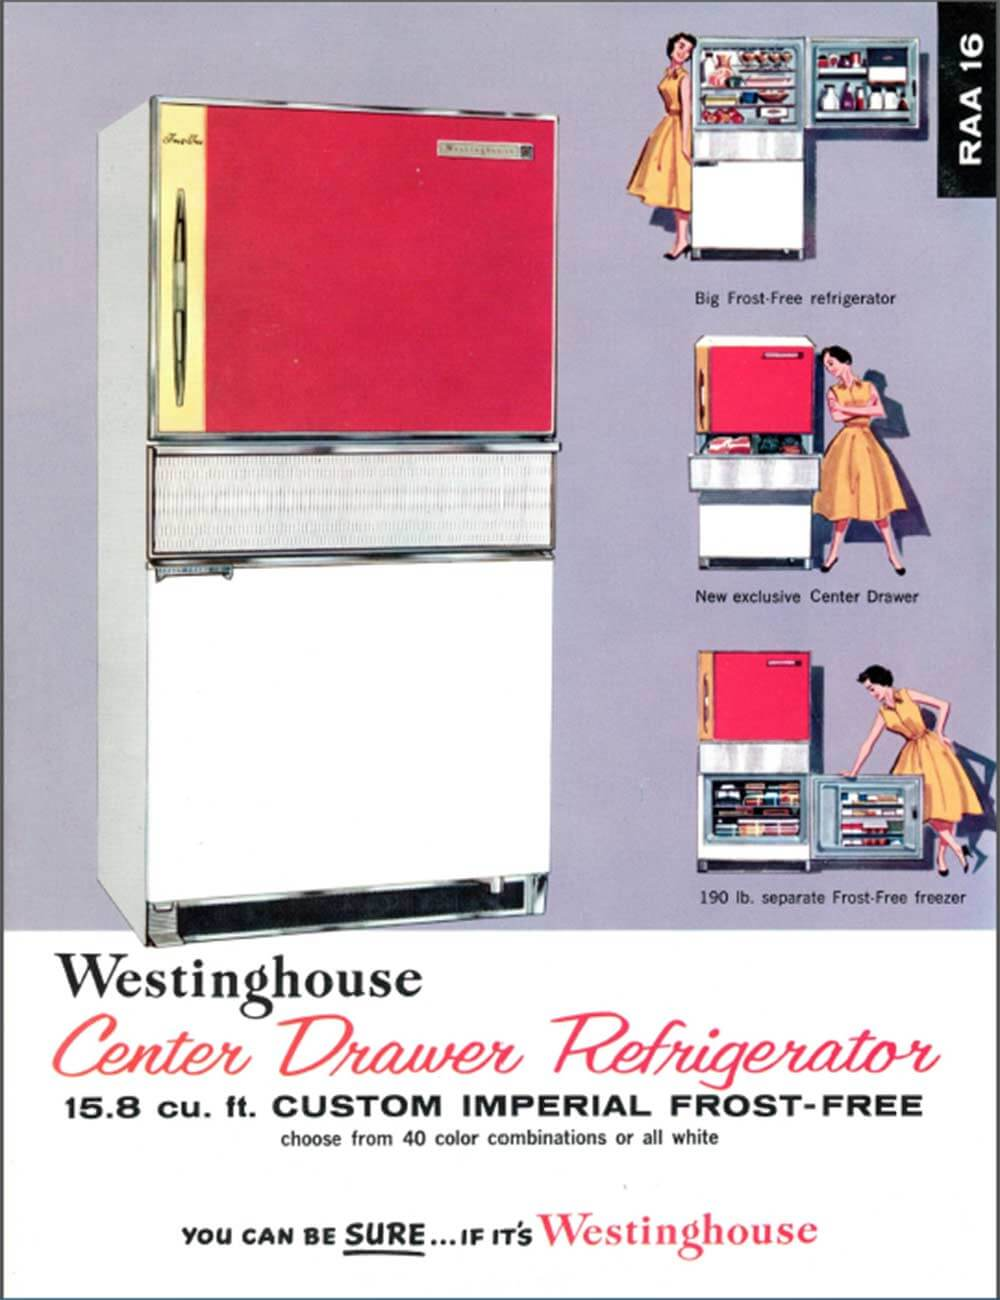 Vintage-Westinghouse-Center-drawer-refrigerator